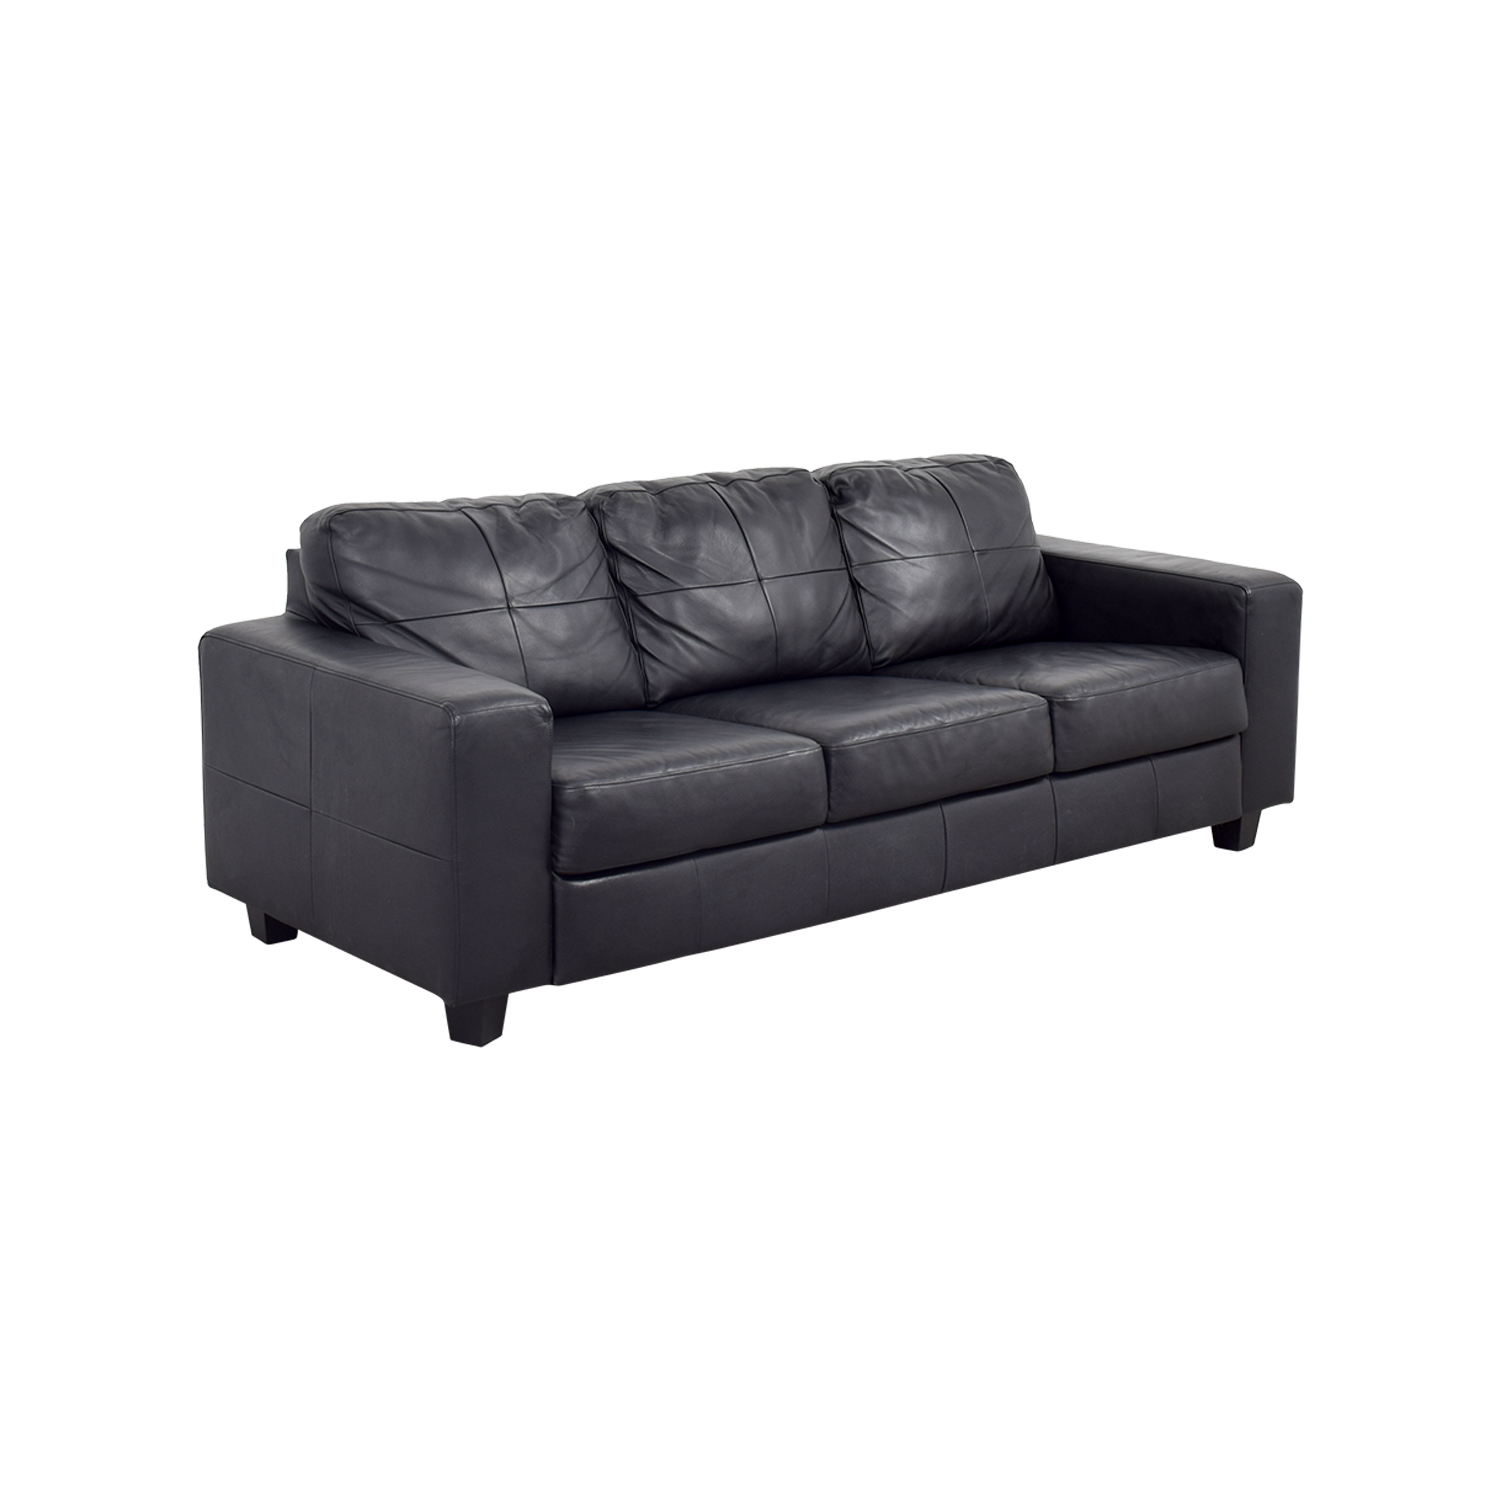 44 off ikea ikea skogaby black leather sofa sofas. Black Bedroom Furniture Sets. Home Design Ideas